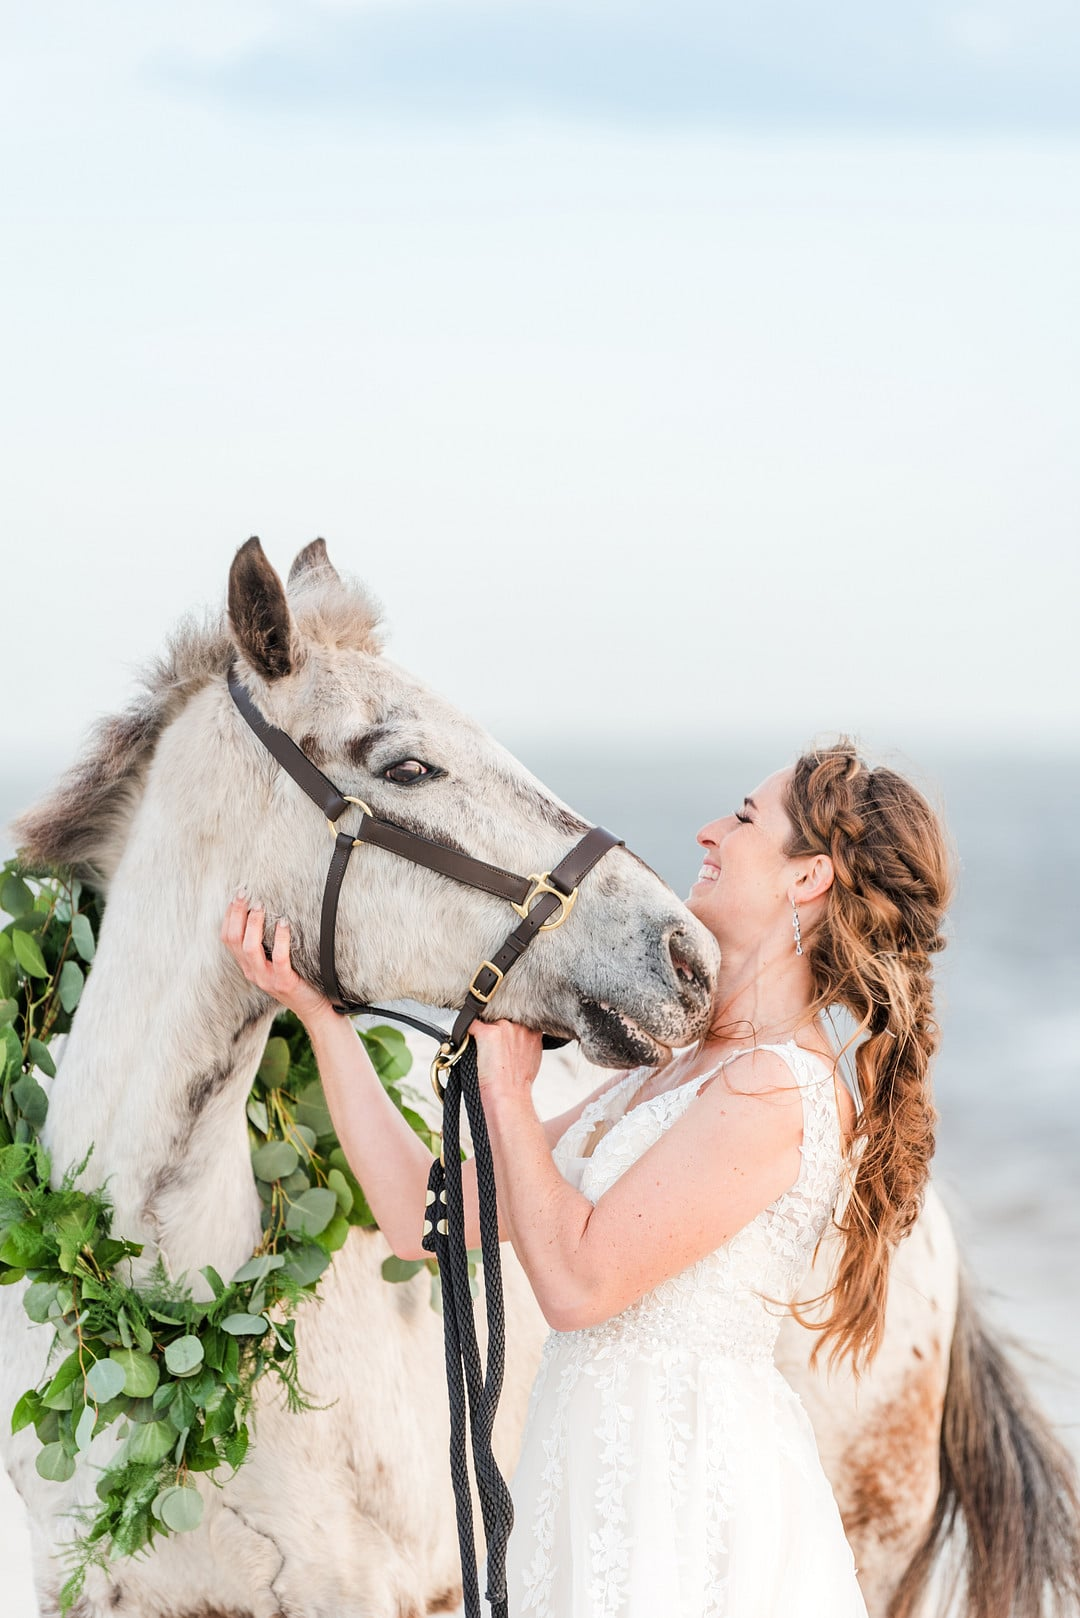 Romantic, Spring Styled Wedding with Horses on the Beach_Christine Austin Photography_©christineaustinphotography_2021_RomanticBeachStyledShoot_Horses_80_low